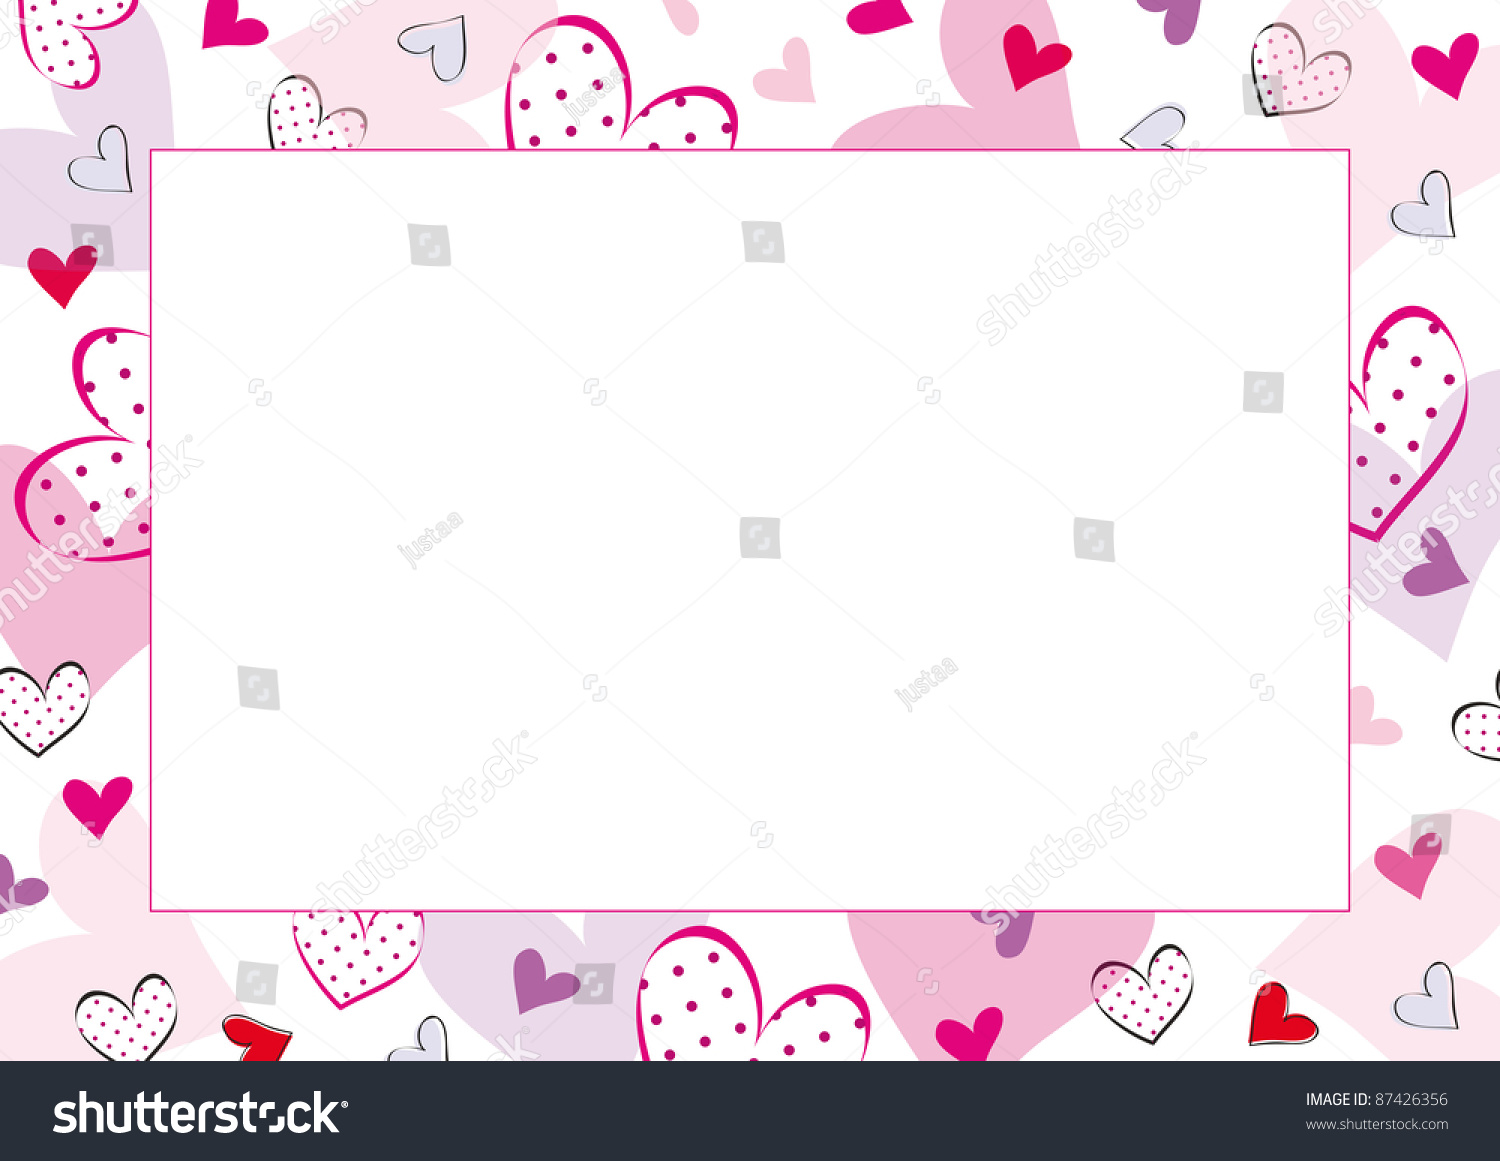 Cute Frame Hearts On Special Day Stock Photo (Photo, Vector ...